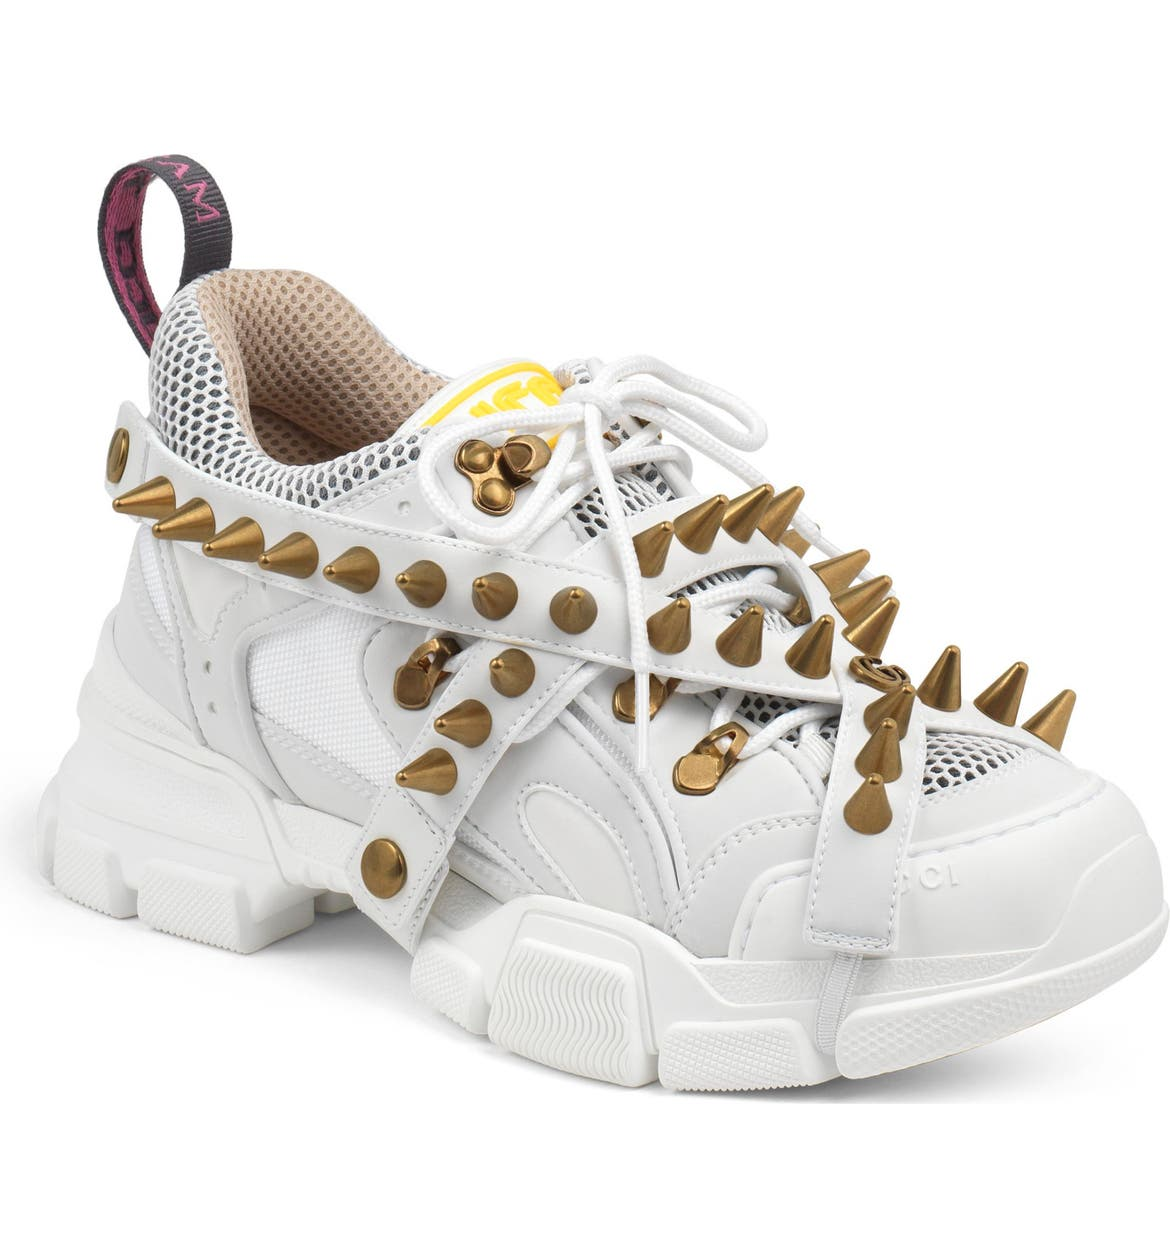 GUCCI Flashtrek Spike Sneaker, Main, color, WHITE/ GOLD